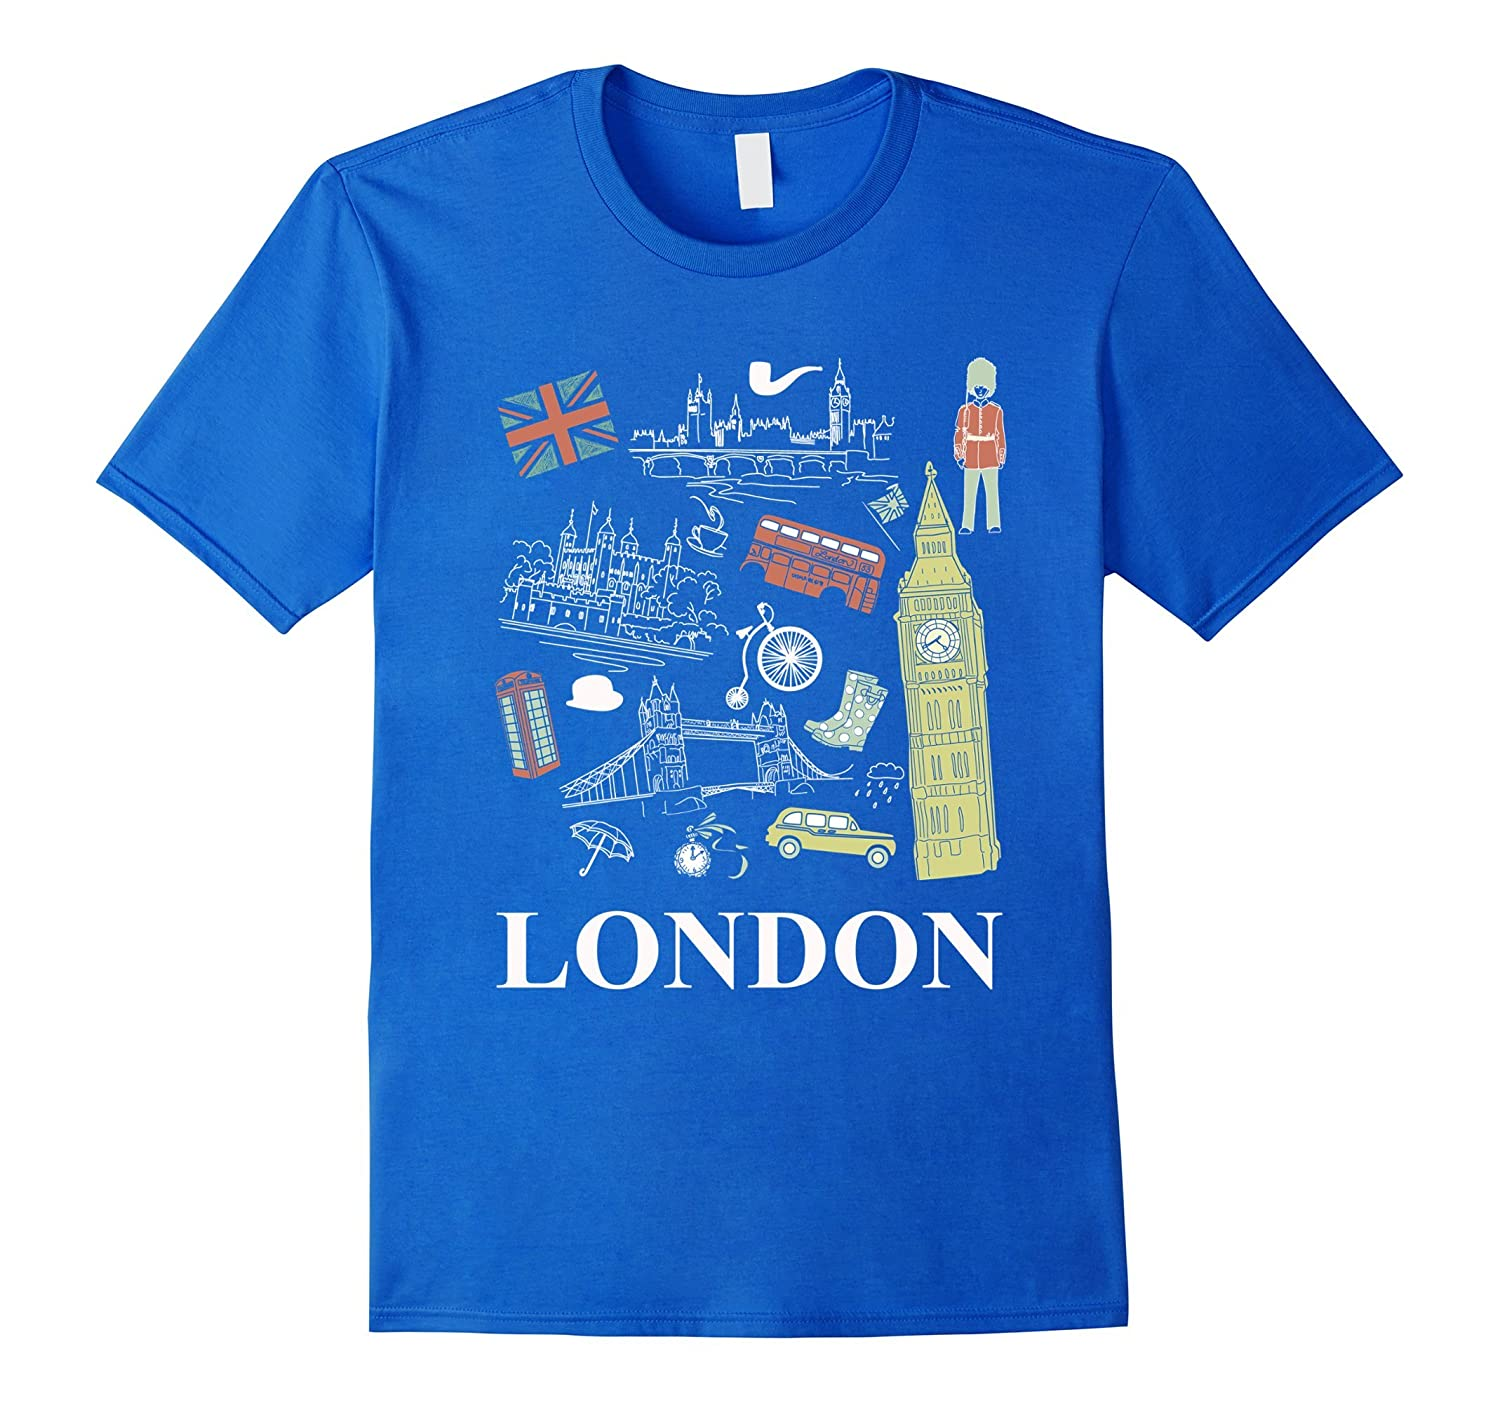 d020757bd London England t shirt for men women boys girls kids tee shirt for Londoner  Gift Tee